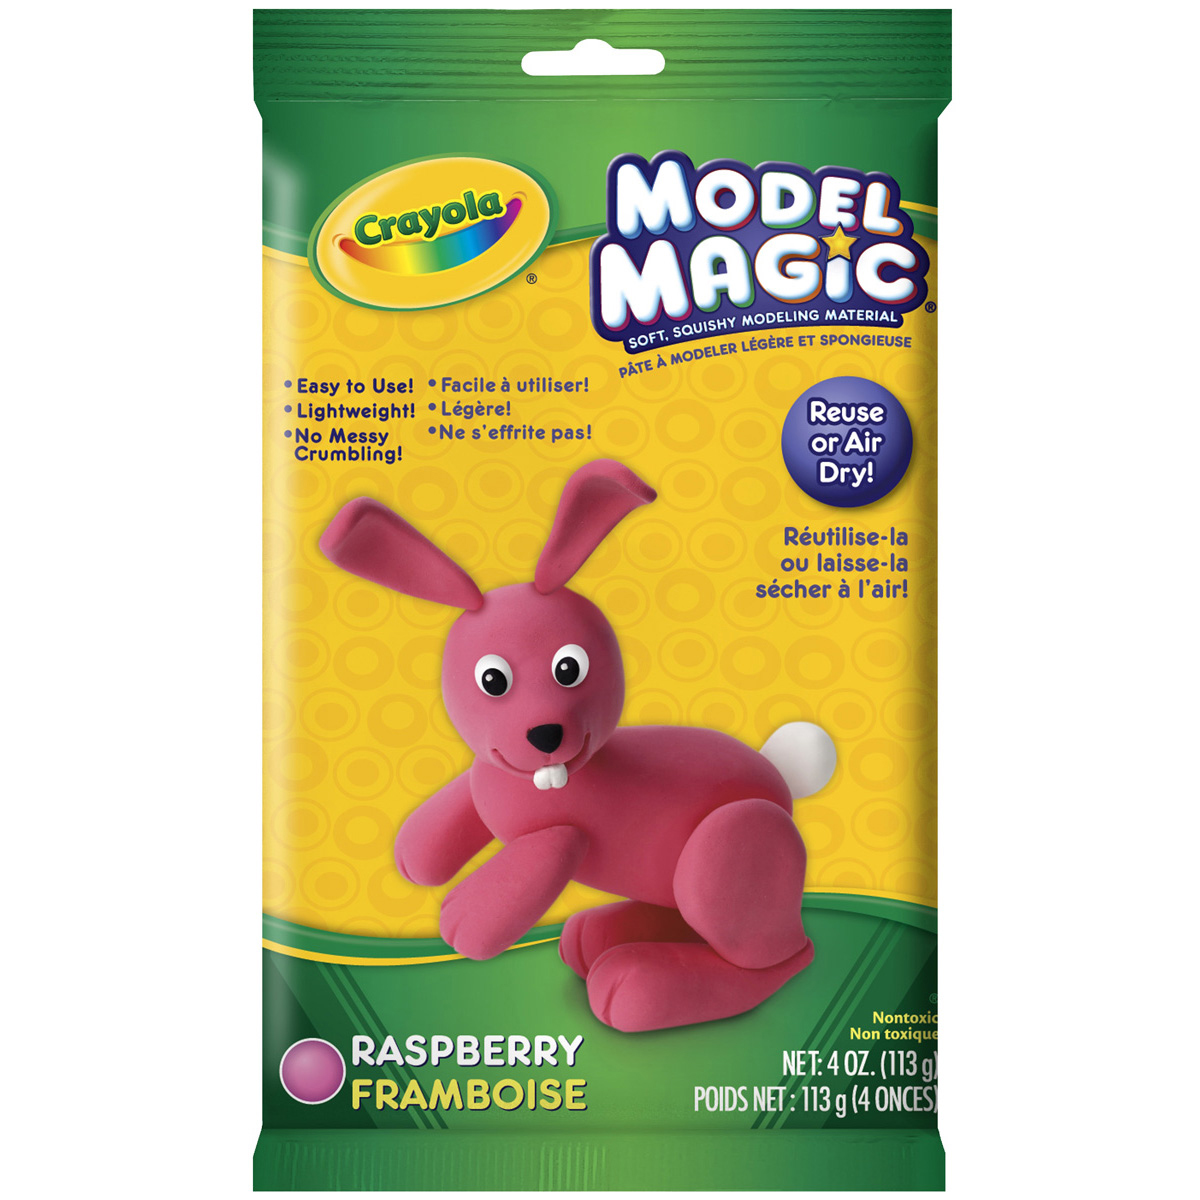 Crayola Model Magic, Raspberry, Alternative Modeling Clay for Kids, 4oz